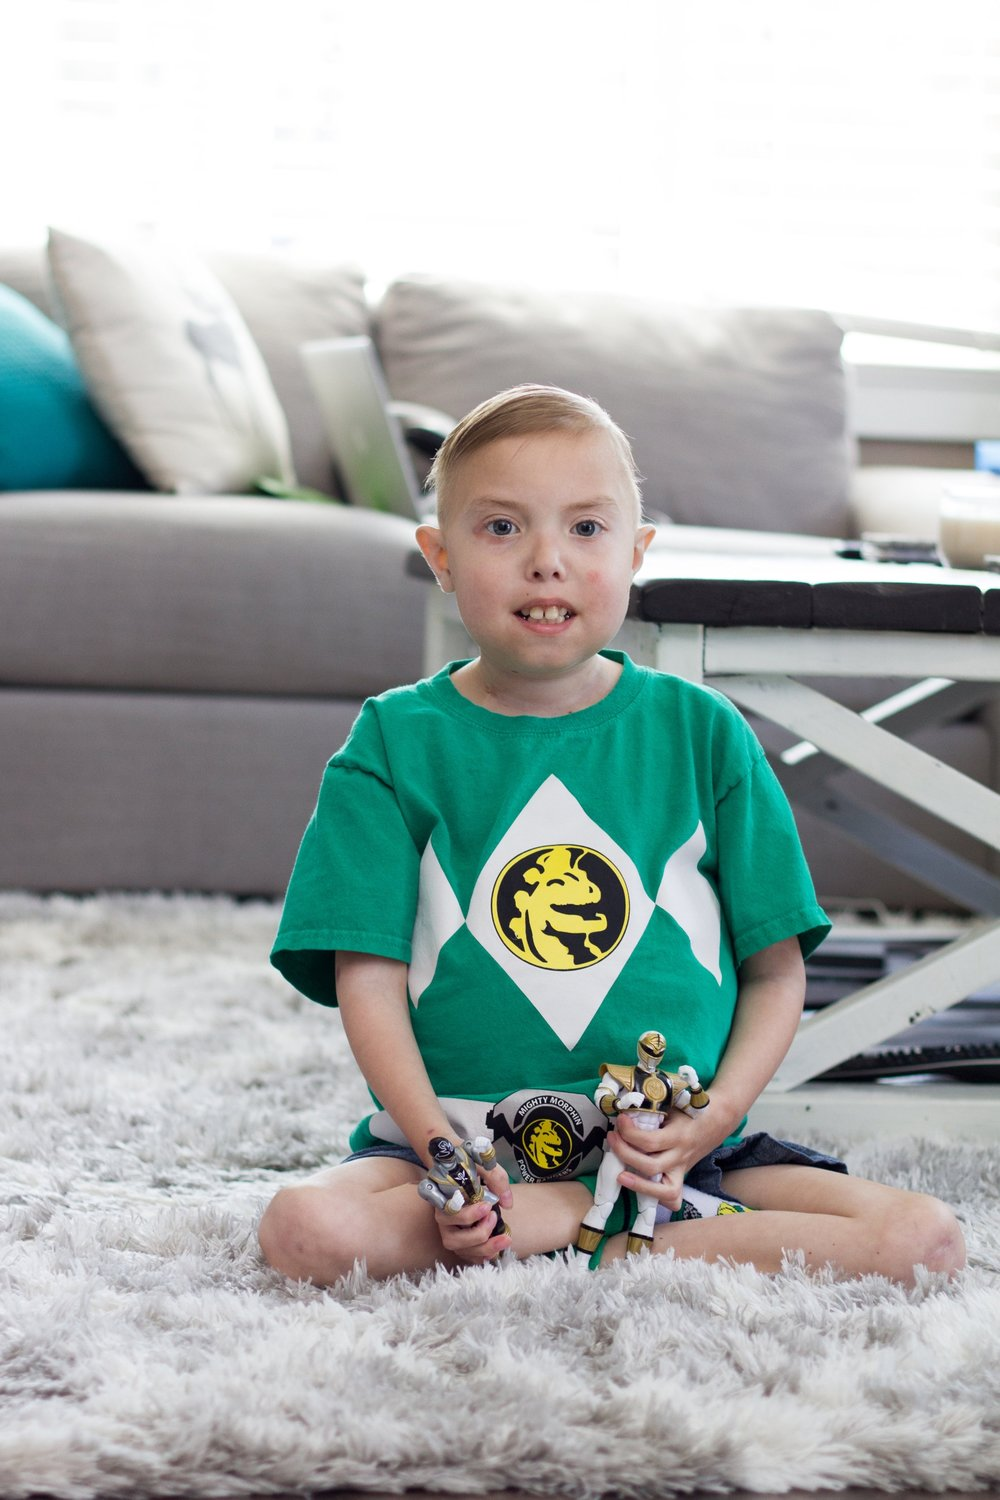 Health - Landon is a humorous eight-year-old who loves Power Rangers, creating YouTube videos and playing pranks. Learn about a life you helped save and protect through exceptional health care at Children's Hospital at London Health Sciences Centre.